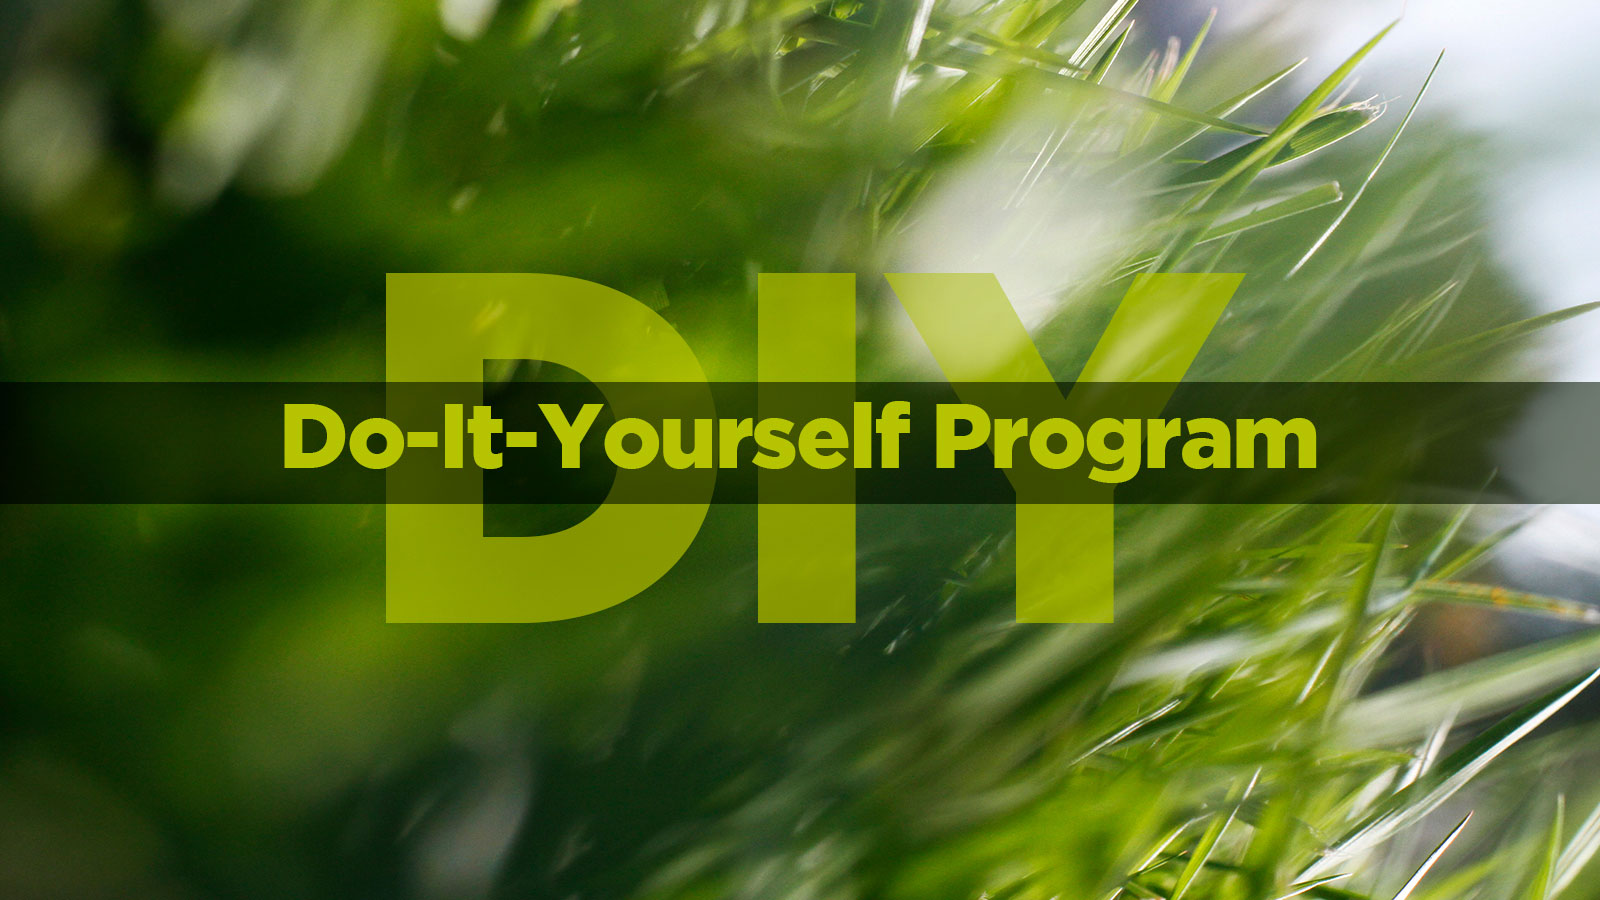 Do It Yourself Program  Omaha Organics DIY Lawn Fertilizer Programs